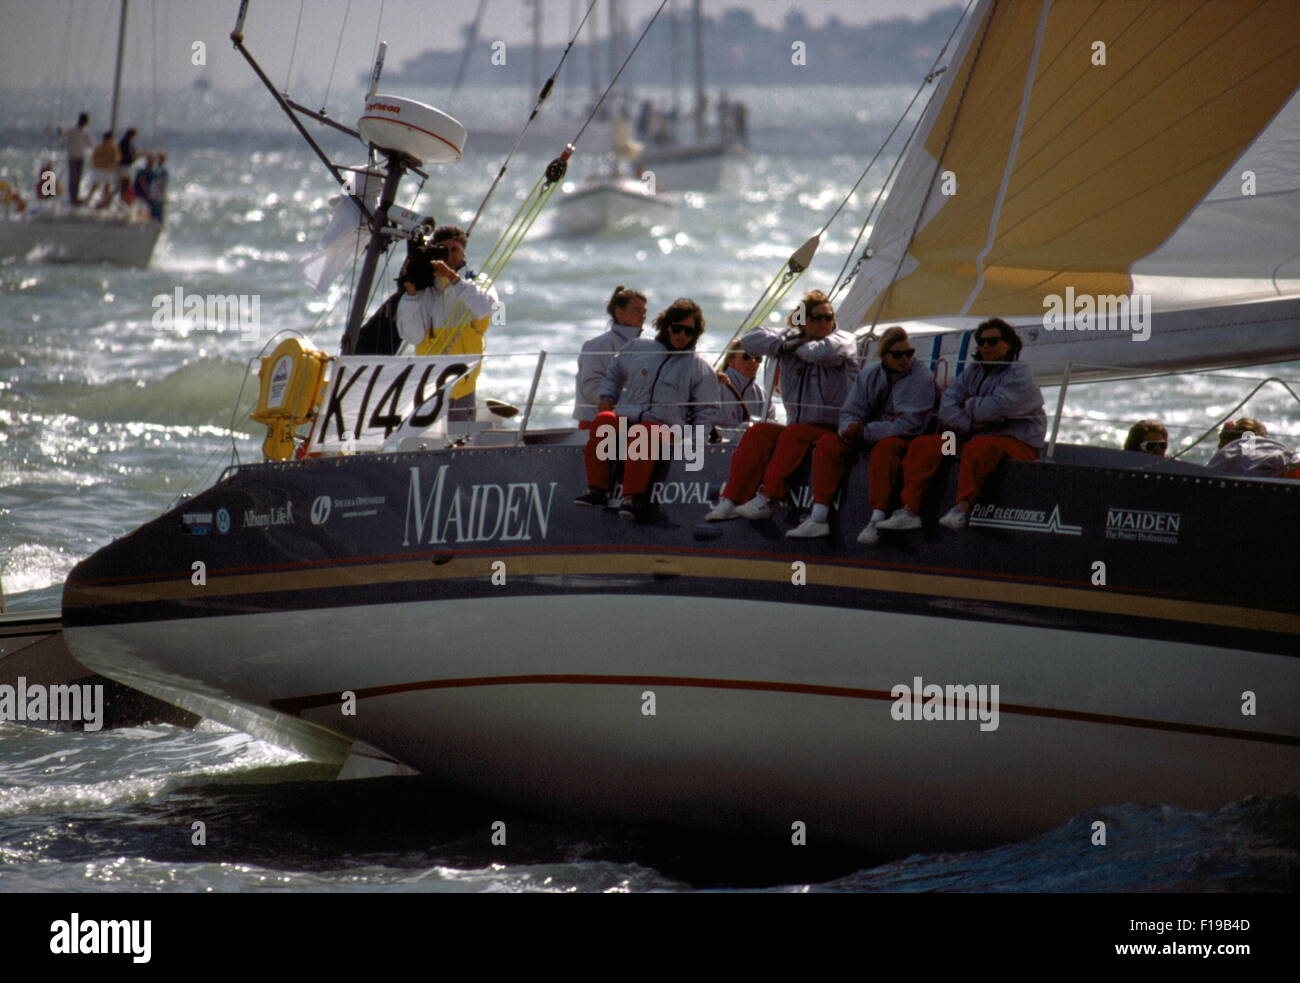 AJAXNETPHOTO. 1989. SOLENT, en Angleterre. YACHT RACE WHITBREAD - - JEUNE FILLE (GBR) skippé par Tracy Edwards Photo Stock